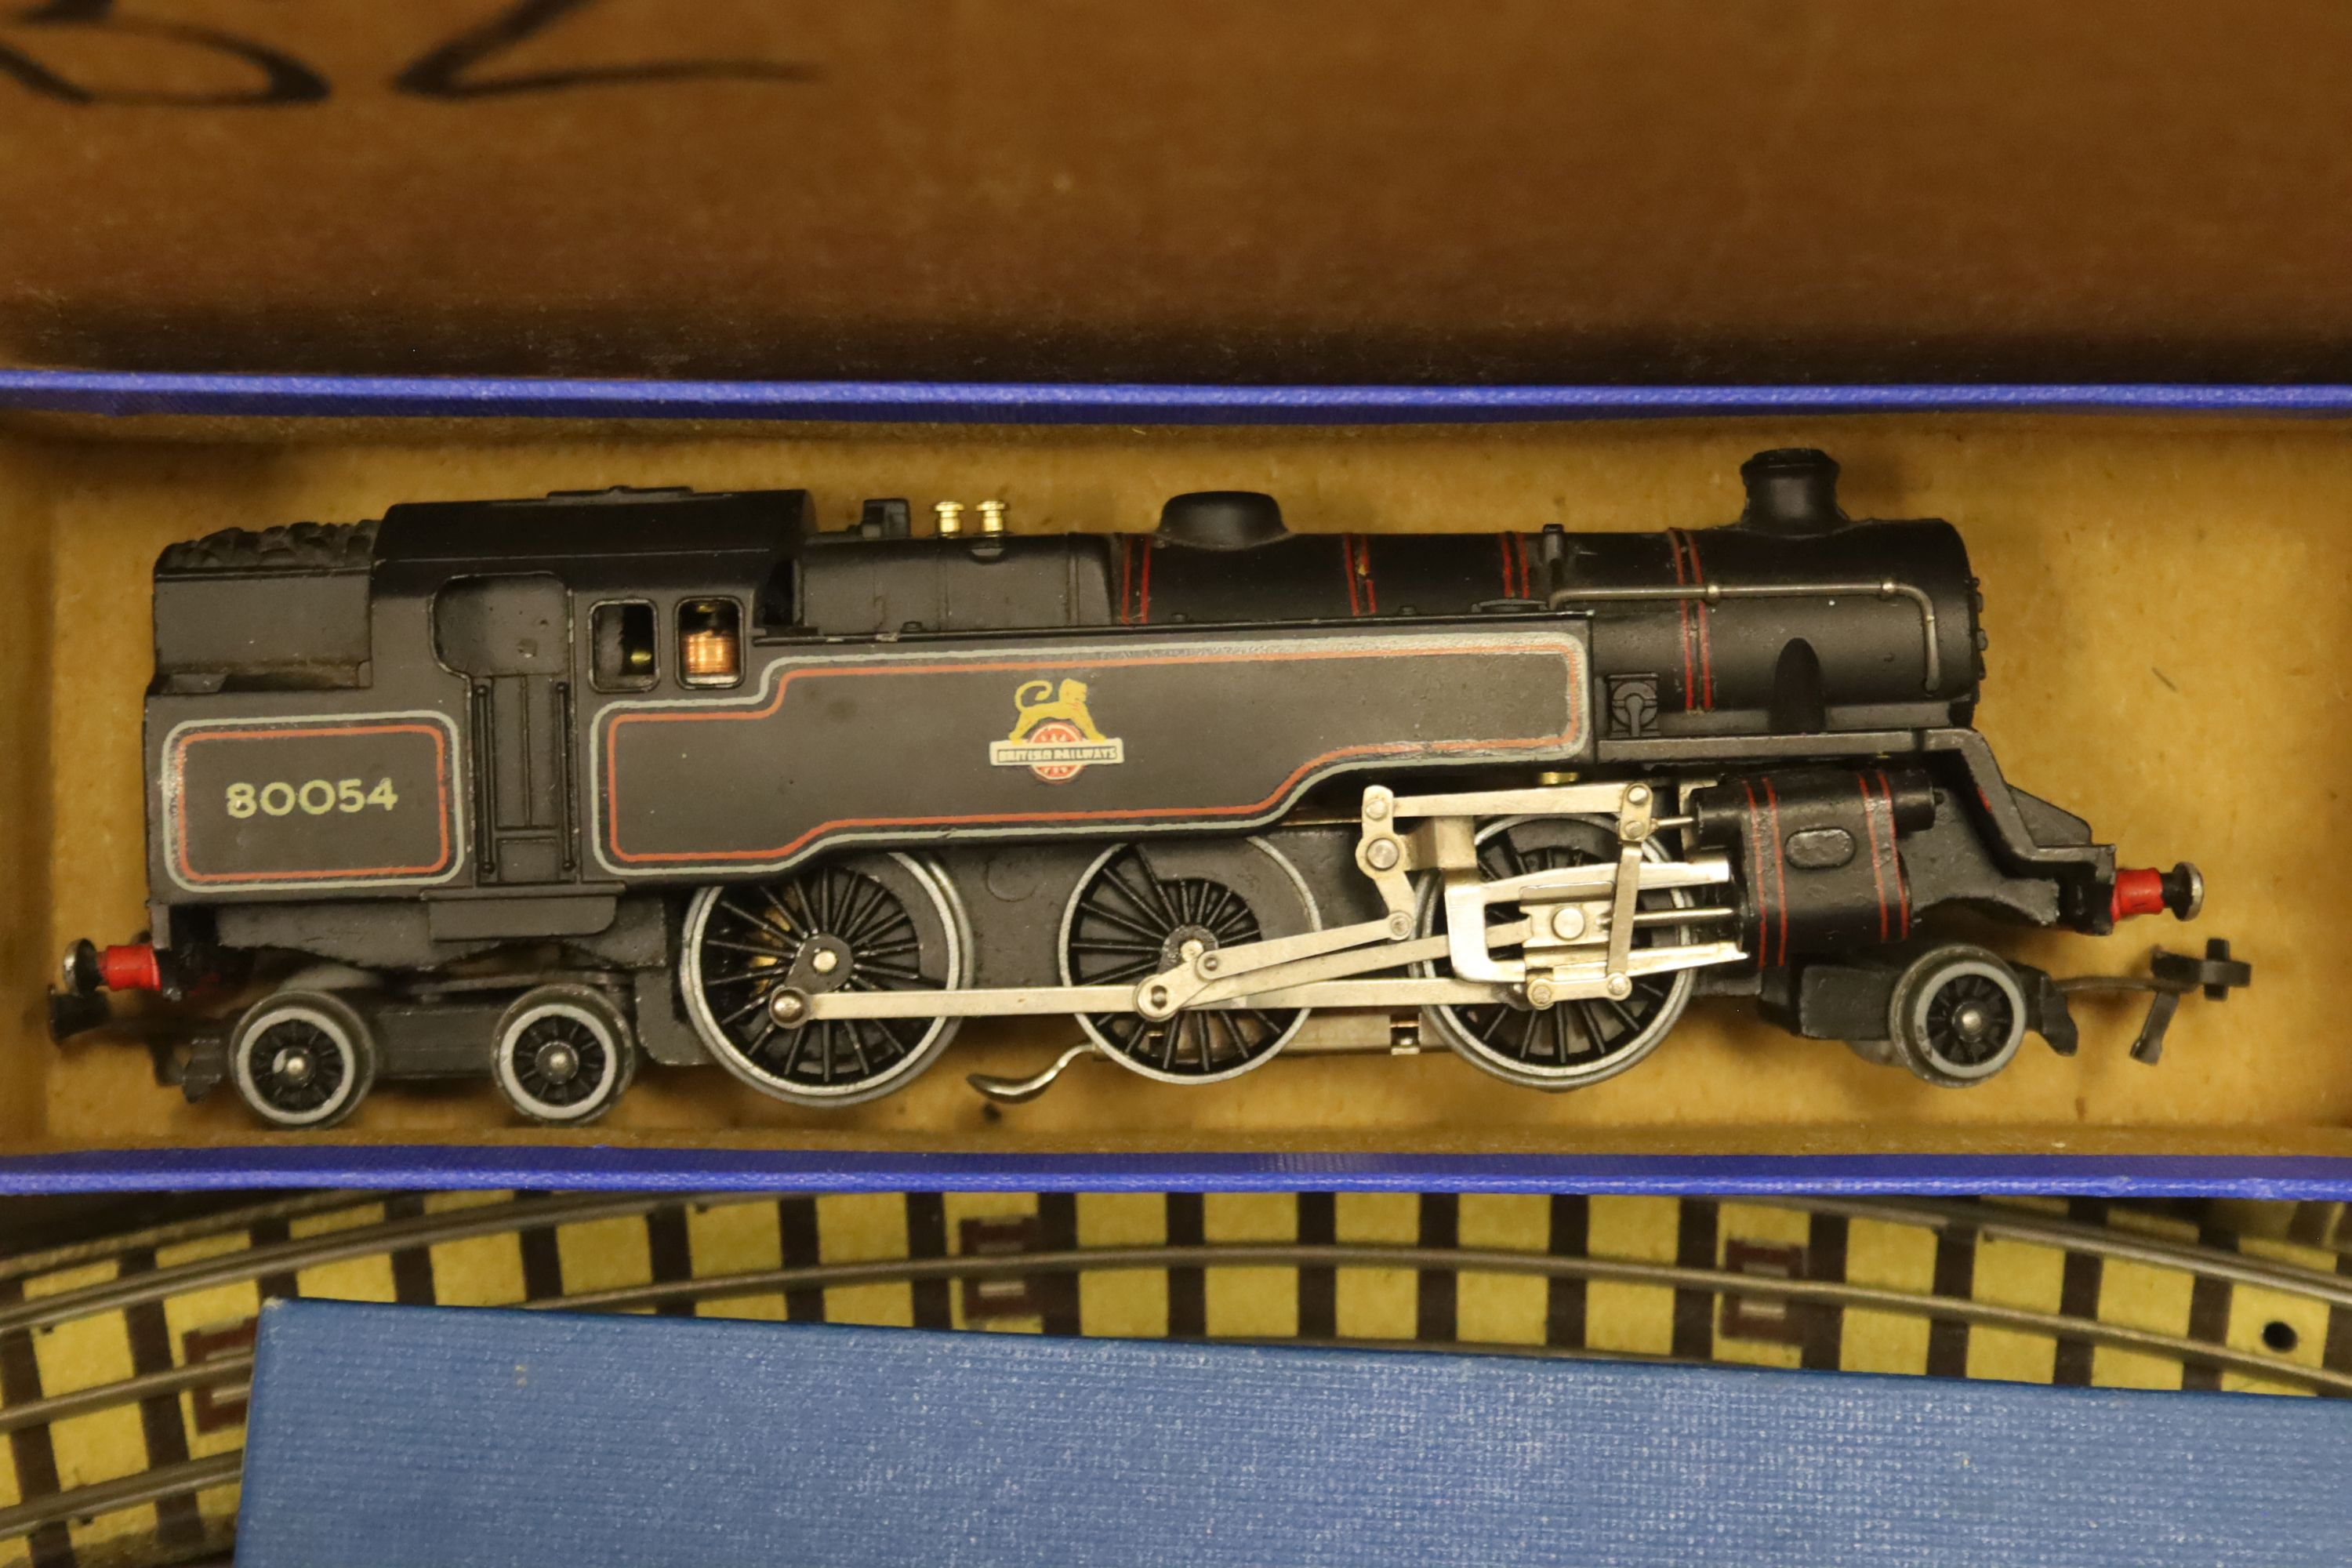 A Hornby Dublo EDG7 tank goods train set, an EDL 18 2-6-4 tank locomotive boxed, one other - Image 2 of 5